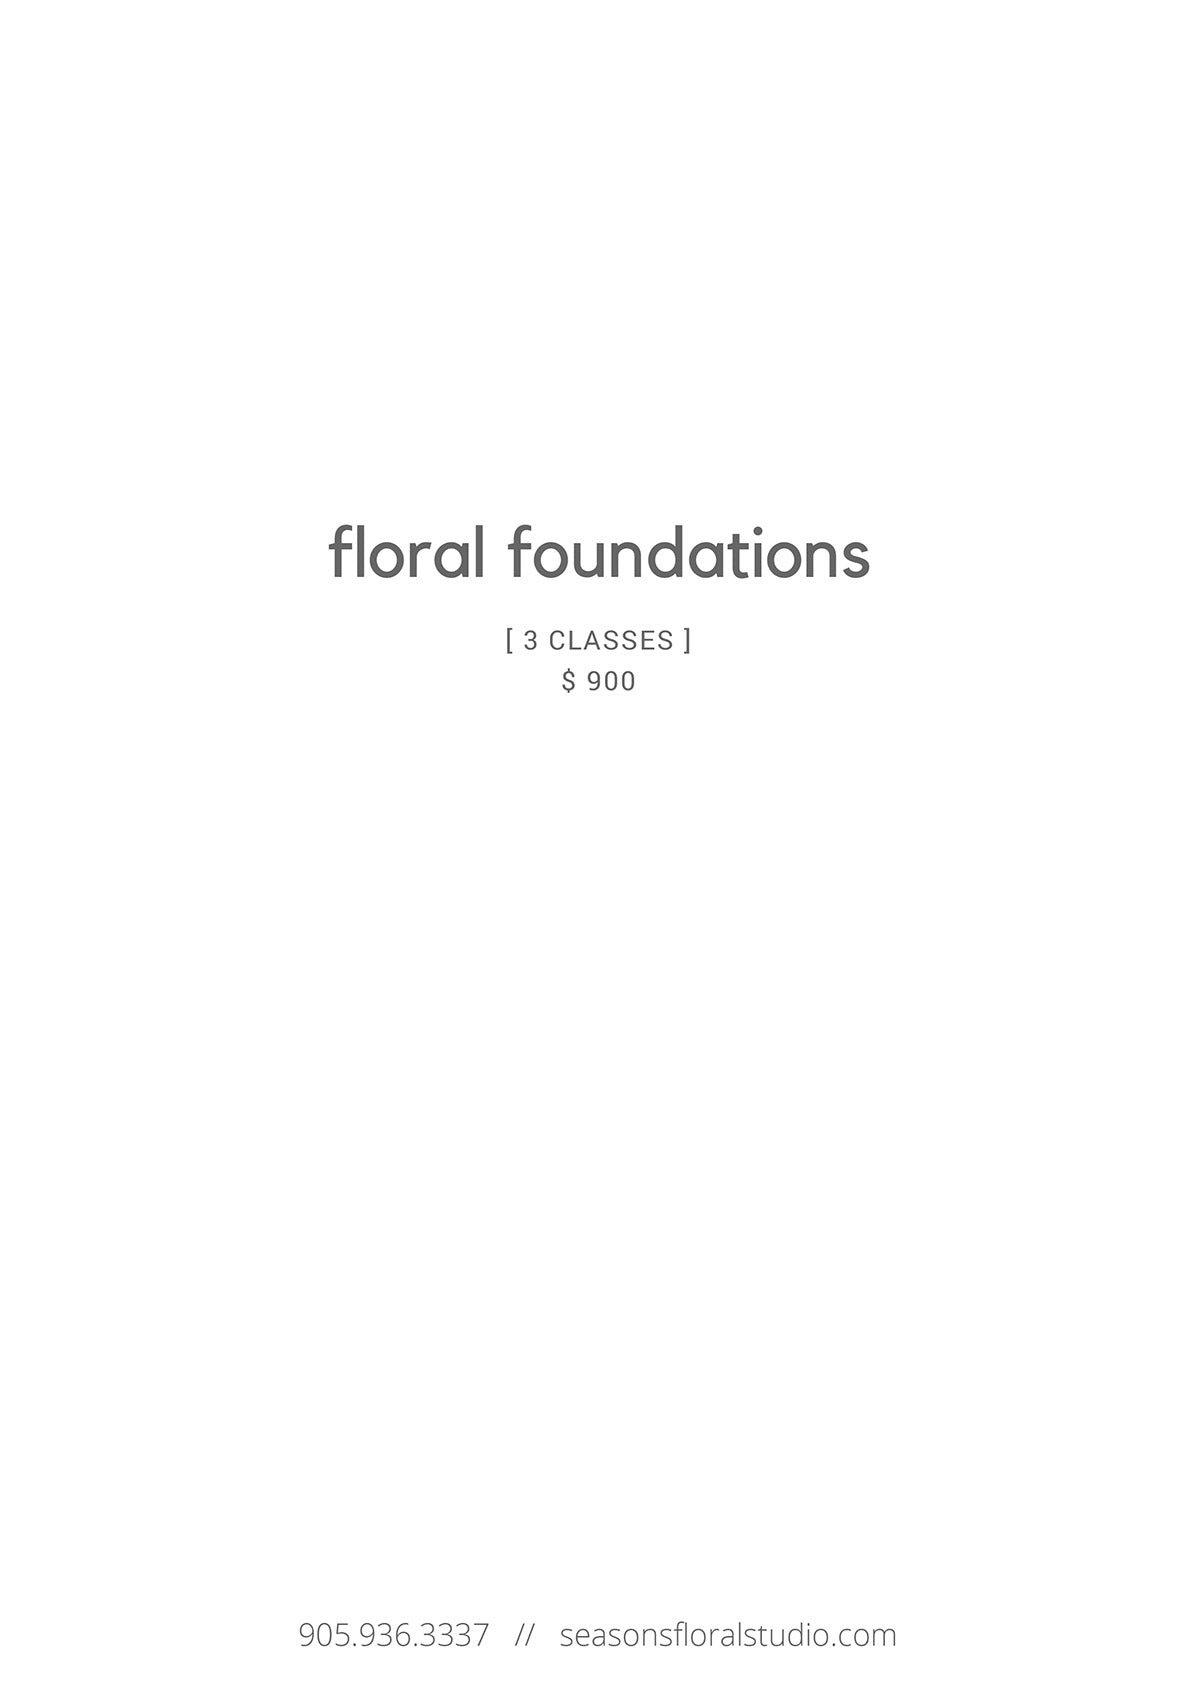 Floral Foundations